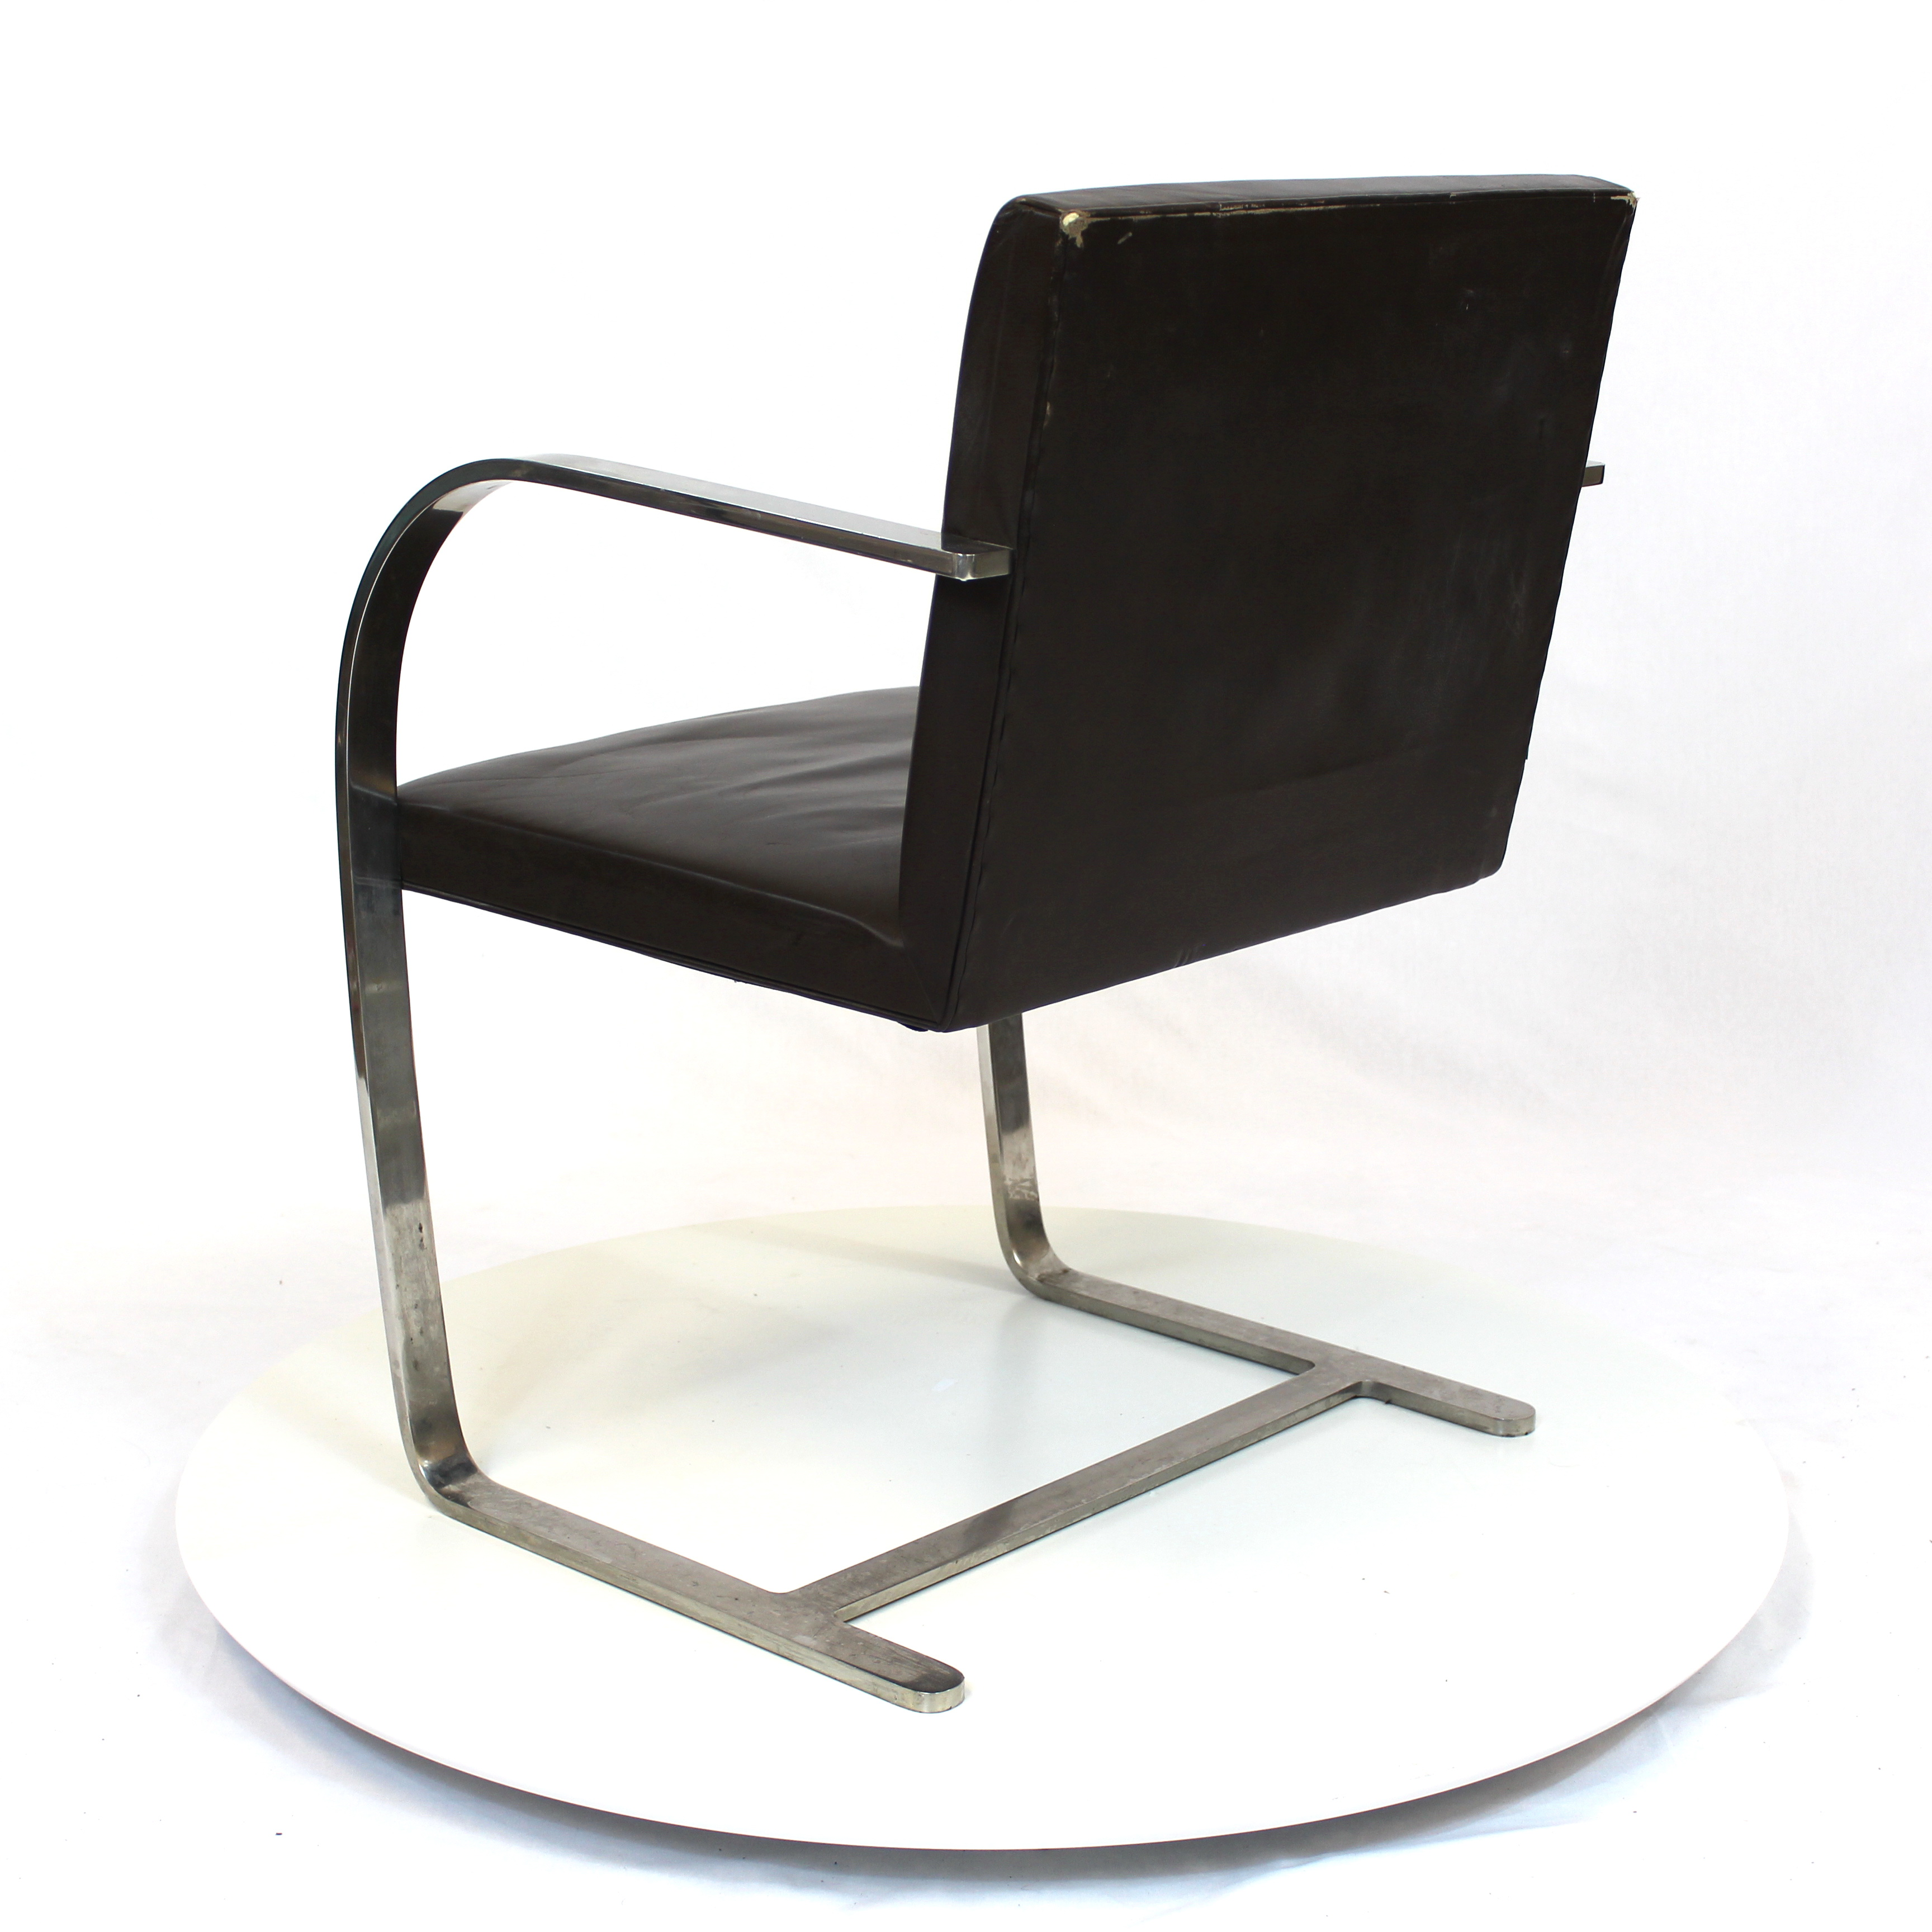 ... Ludwig Mies Van Der Rohe   Brno Chair Black Leather ...